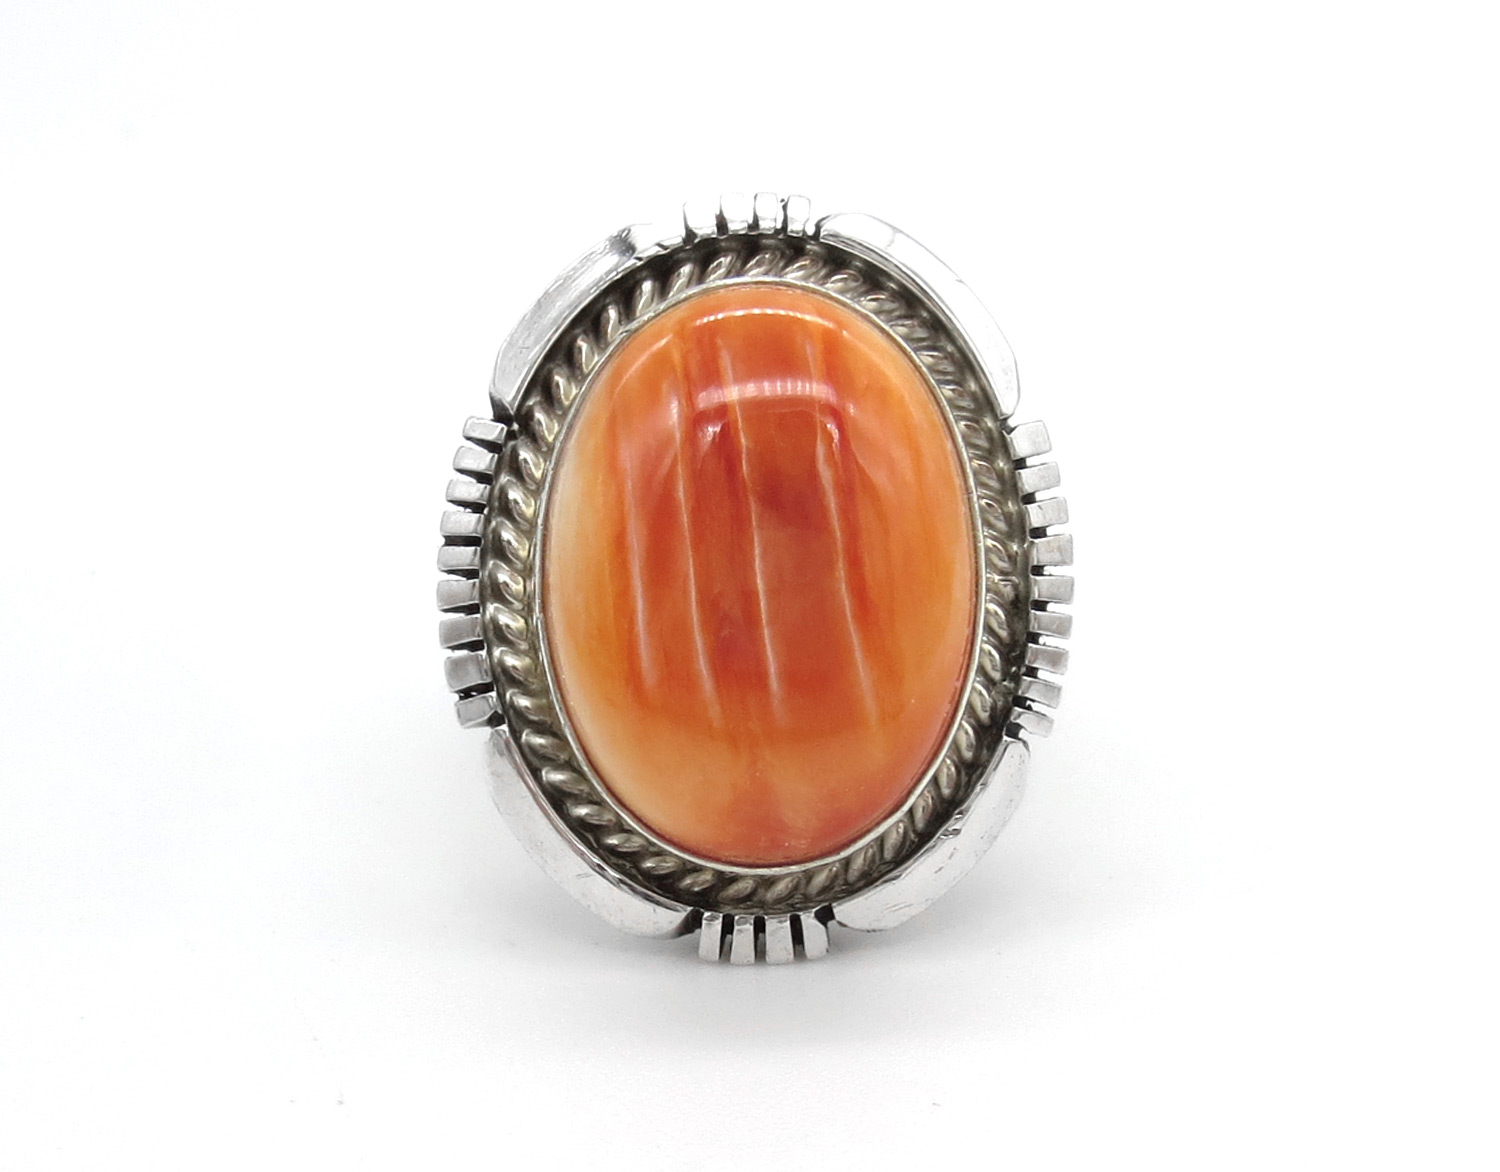 Orange Spiny Oyster & Sterling Silver Ring Sz 7.5 Navajo Jewelry - 3869dt